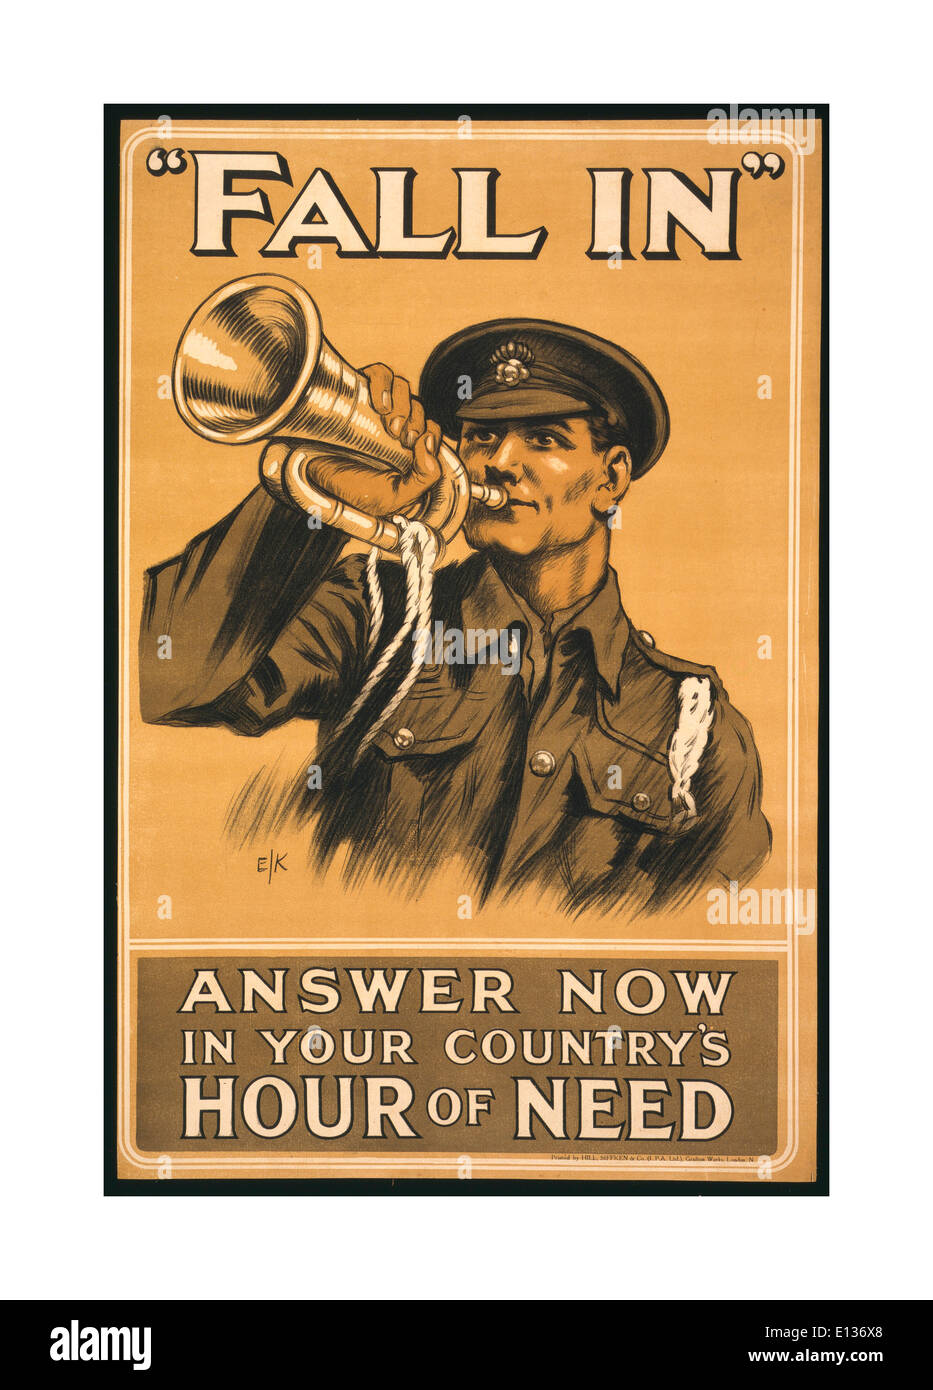 WW1 Recruitment propaganda poster in 1914 UK showing a soldier in uniform blowing 'Fall In' on a bugle - Stock Image